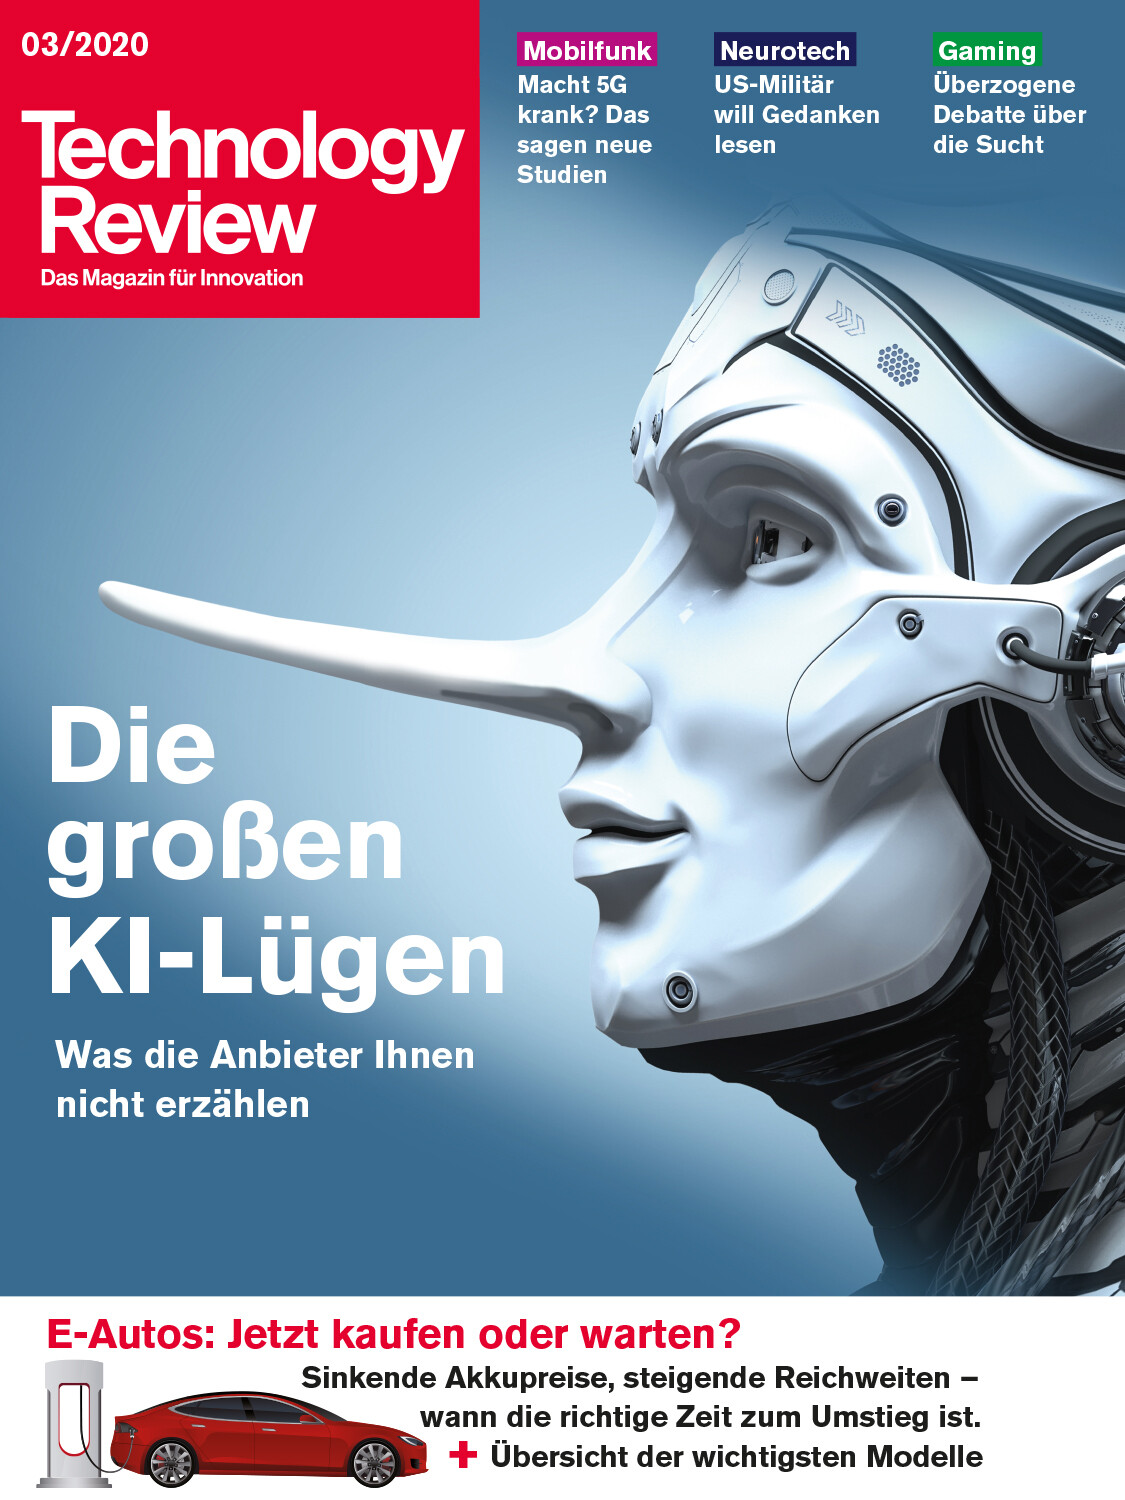 Technology Review 03/2020